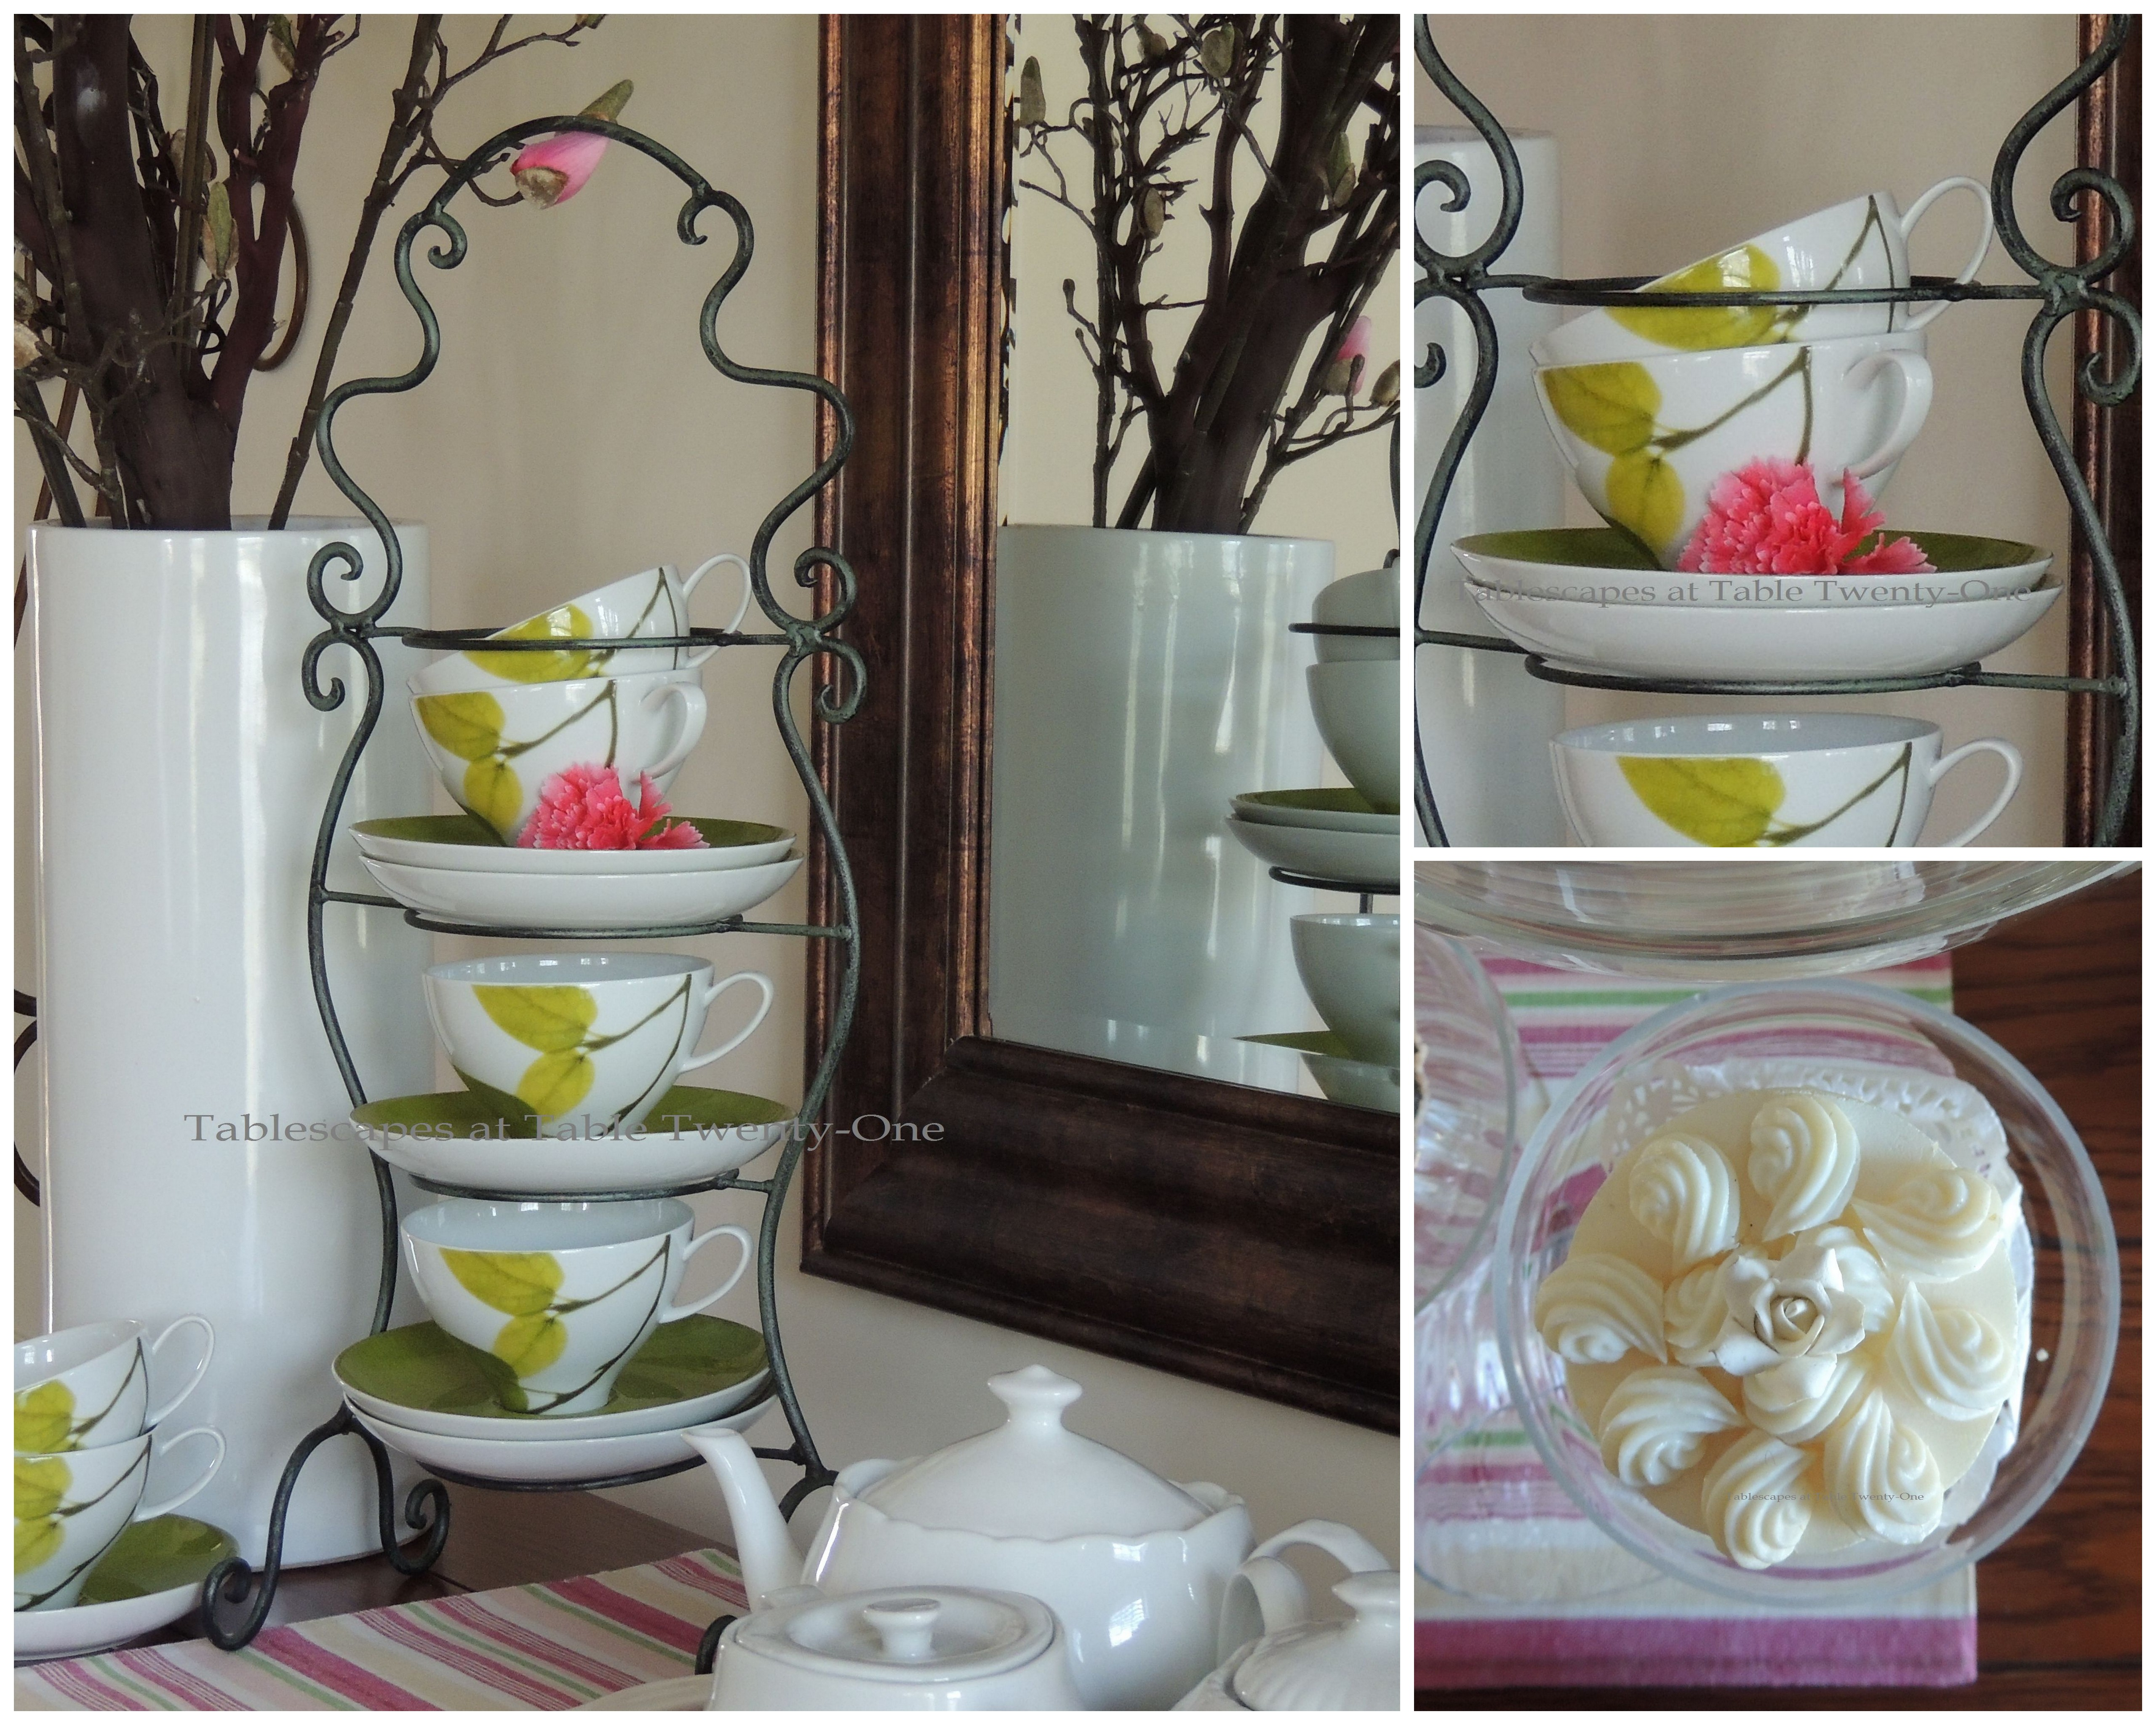 Tablescapes at Table Twenty-One, www.tabletwentyone.wordpress.com - All A'Bloom in Pink for Spring: Mikasa Daylight teacups & saucers collage